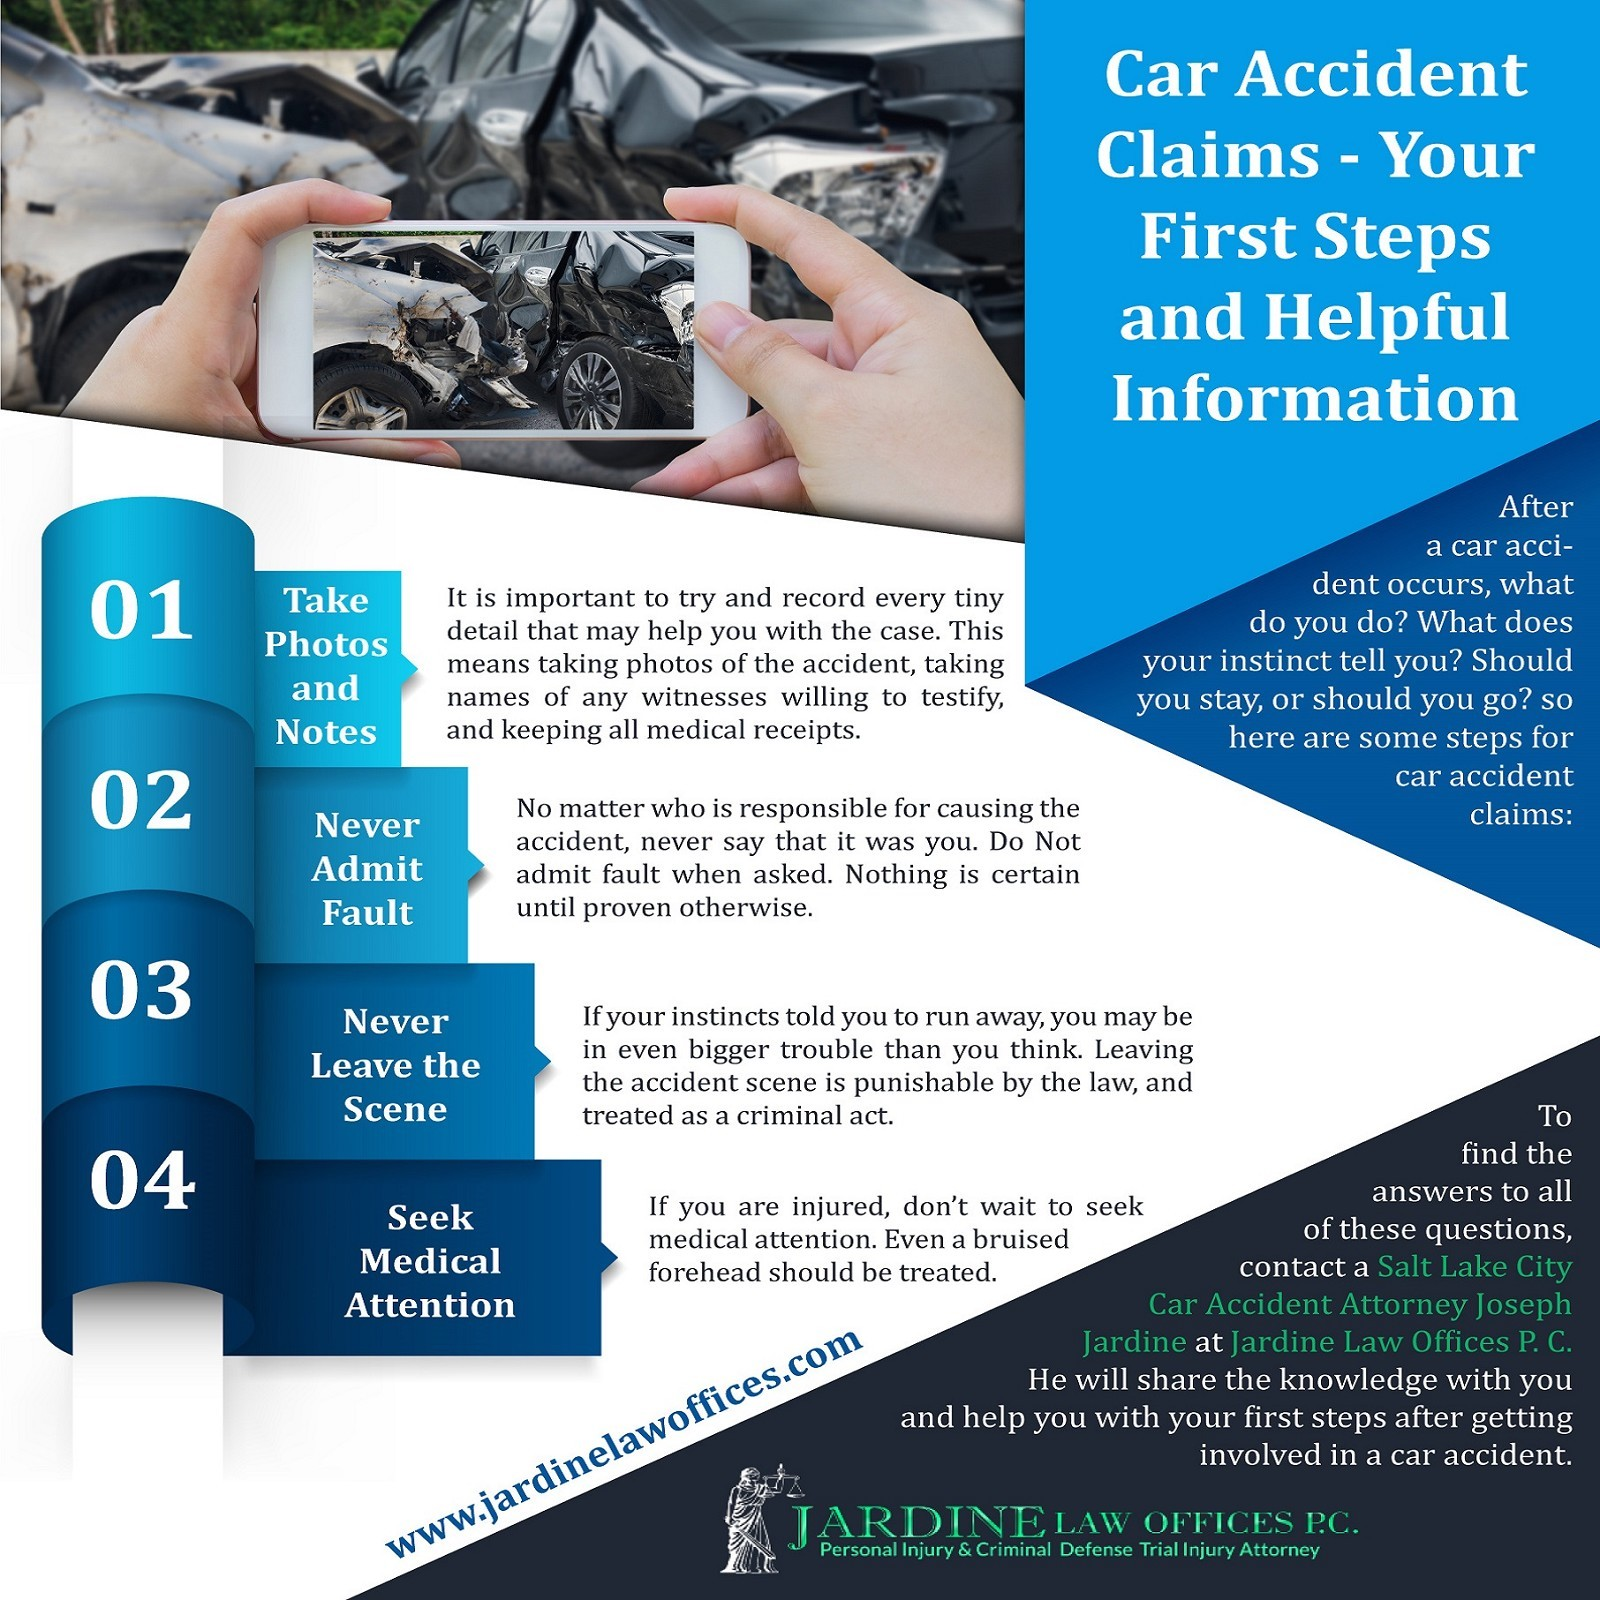 Car Accident Claims - Your First Steps and Helpful Information